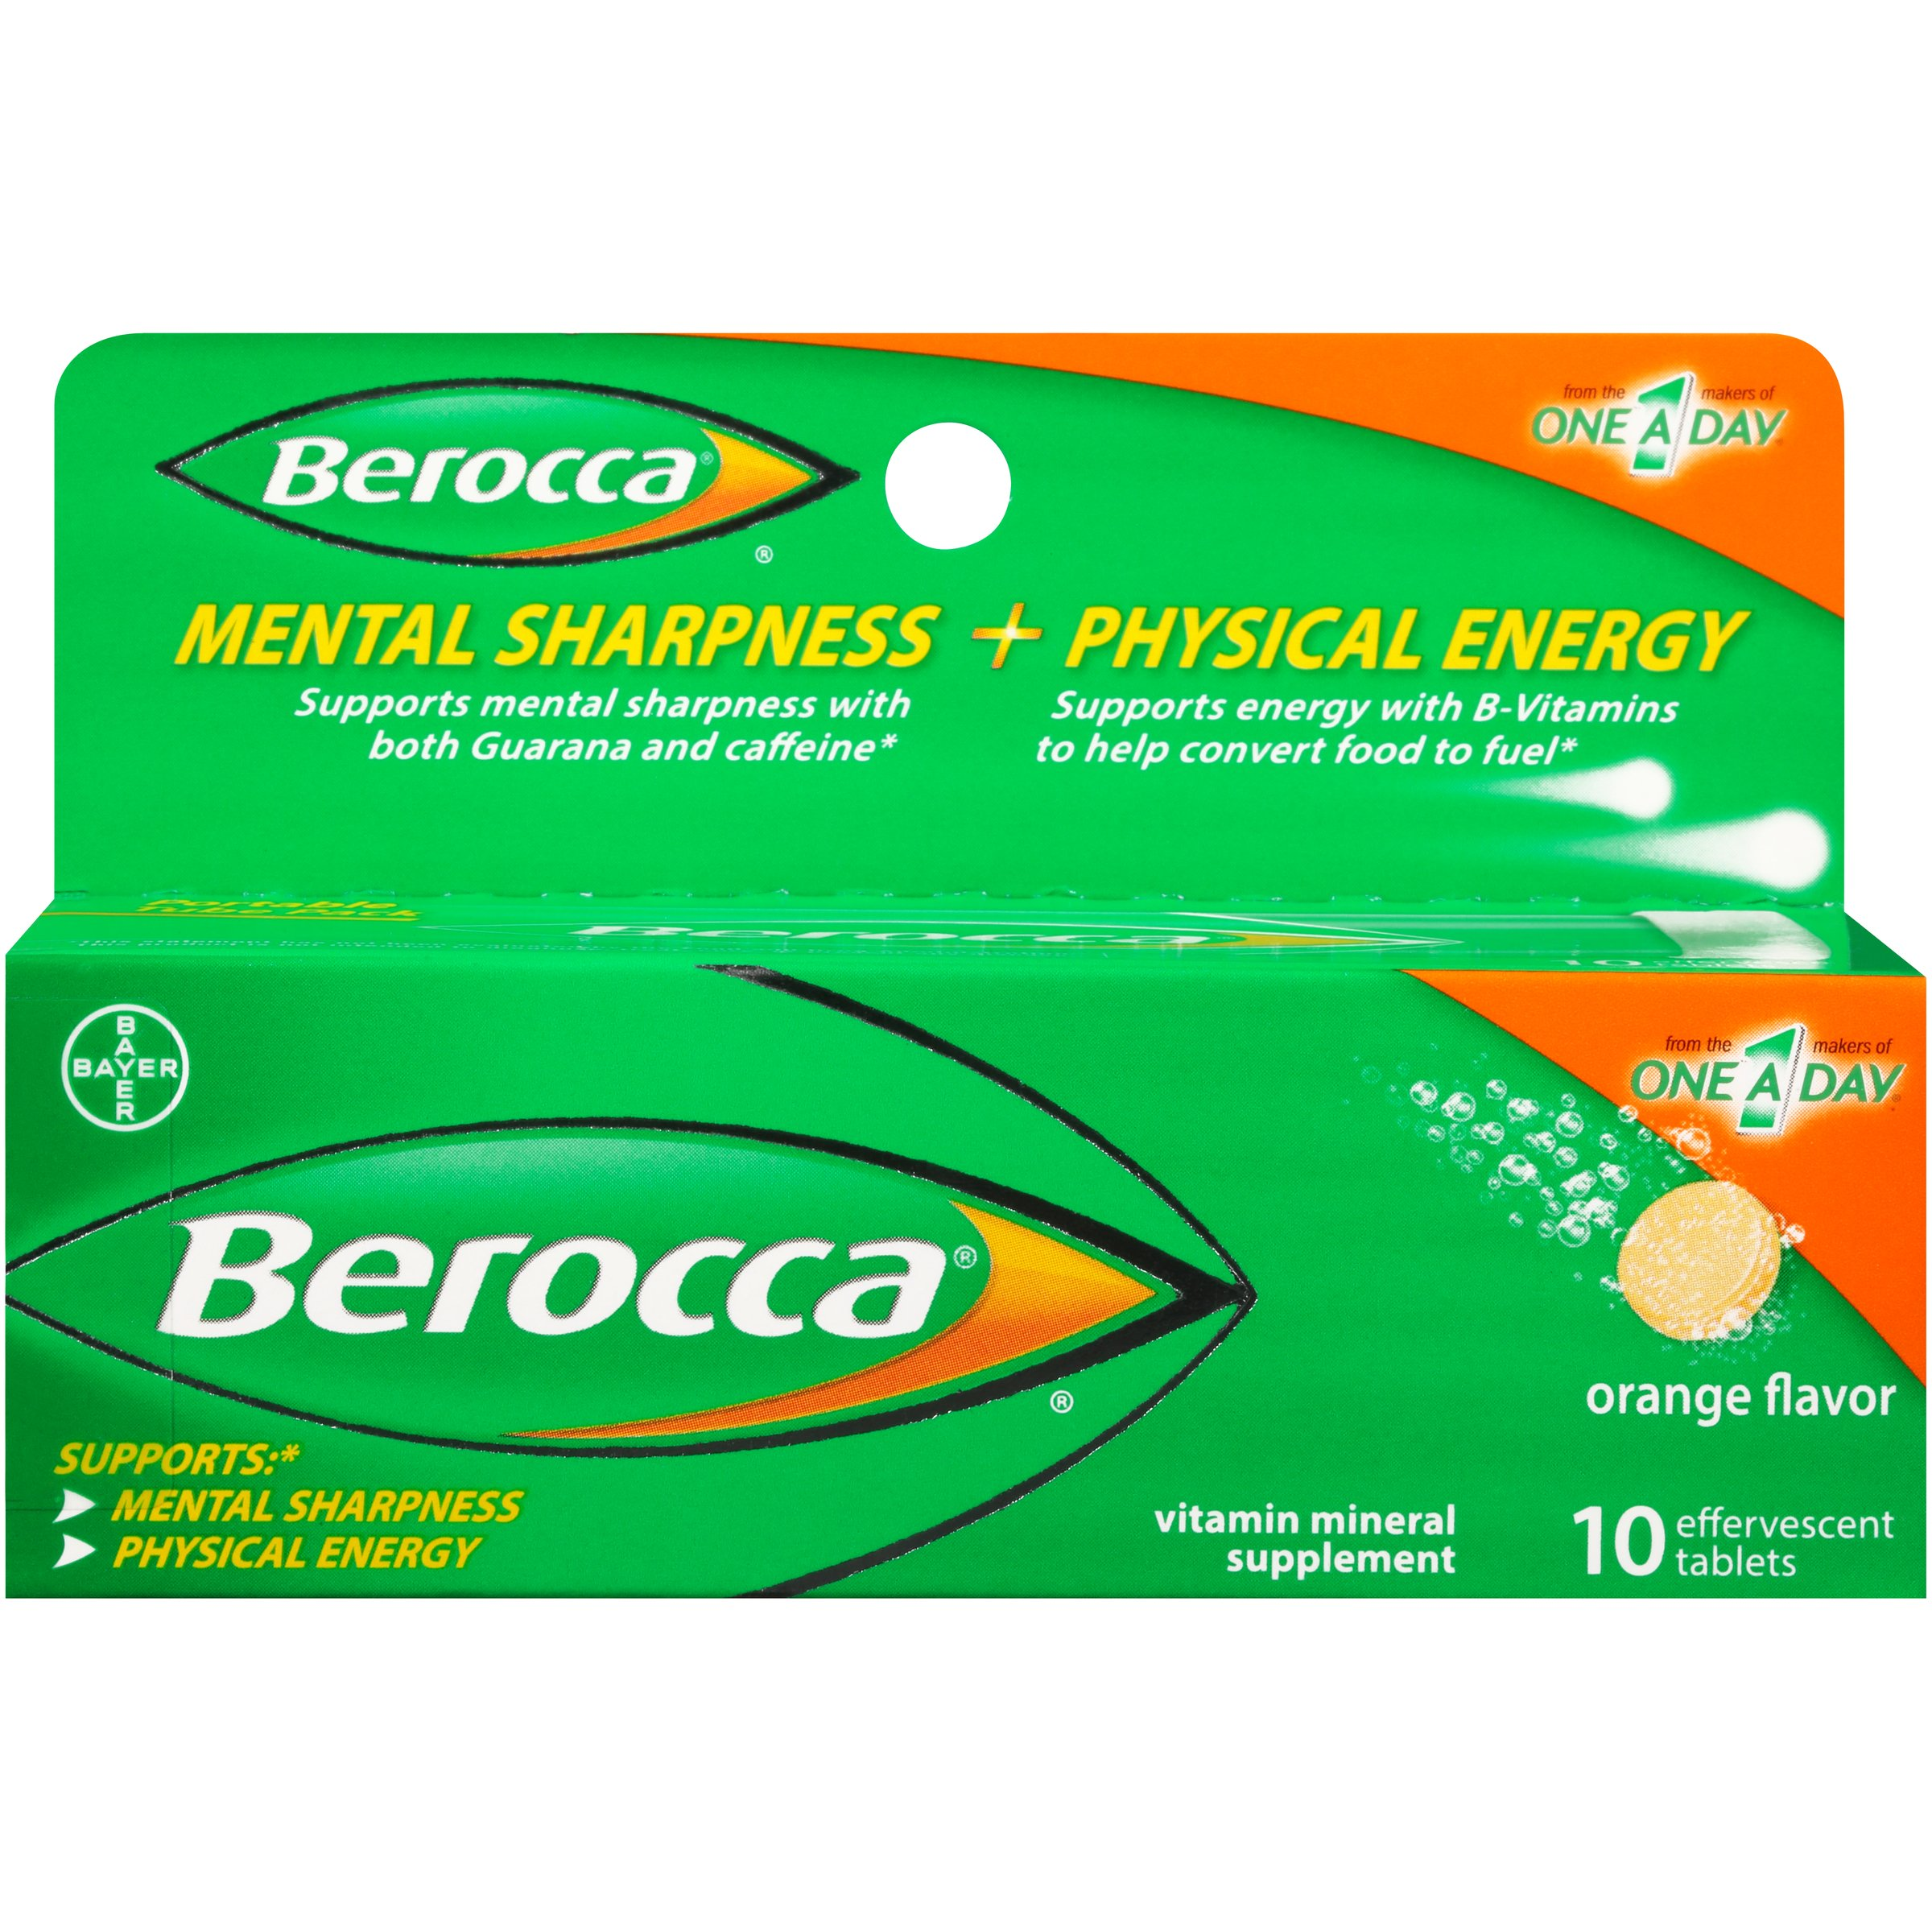 Berocca with Caffeine and Guarana to Support Mental Sharpness and B Vitamins to Support Physical Energy